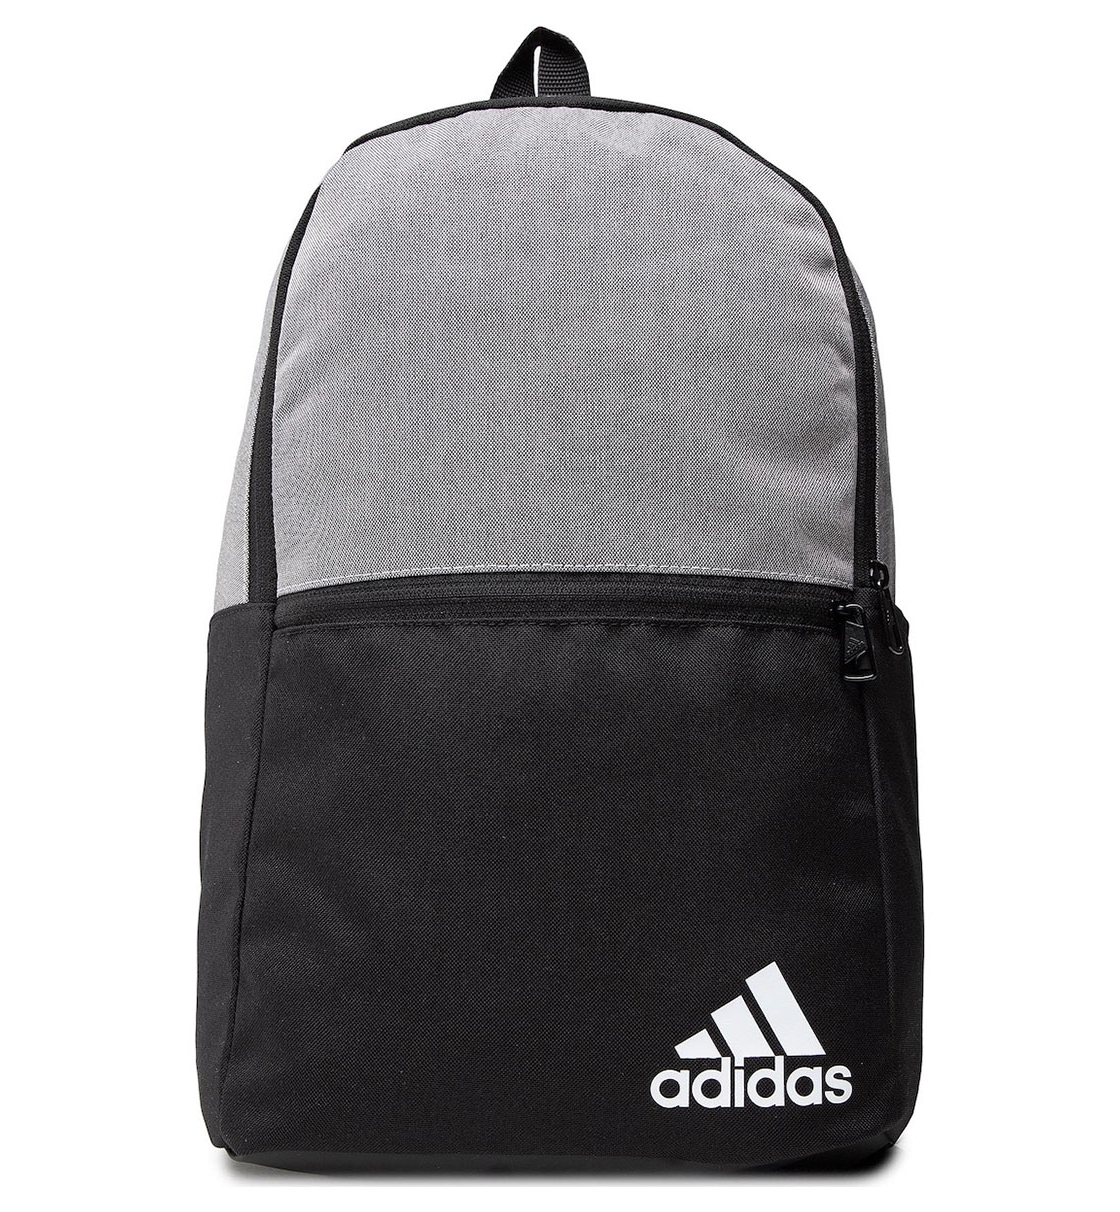 adidas Σακίδιο Πλάτης Fw21 Daily Backpack Ii H34838